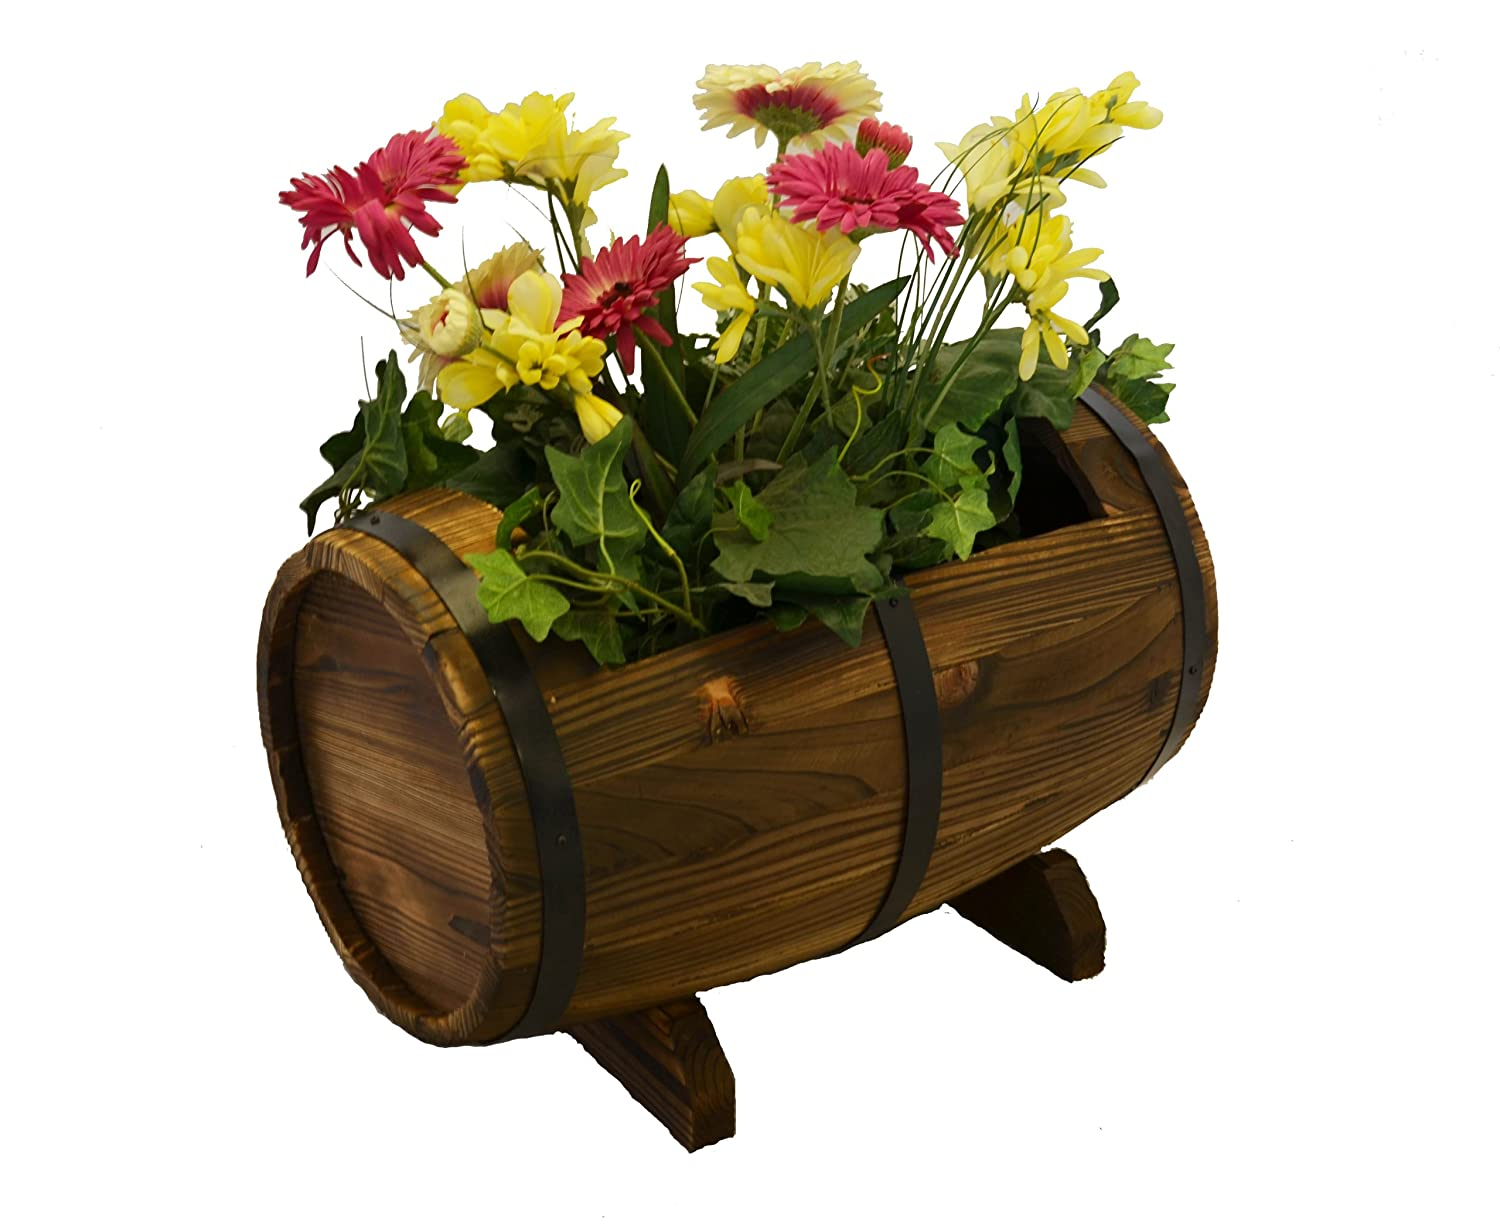 Amazon.com : Wooden Whiskey Barrel Flower Planter Product SKU ...